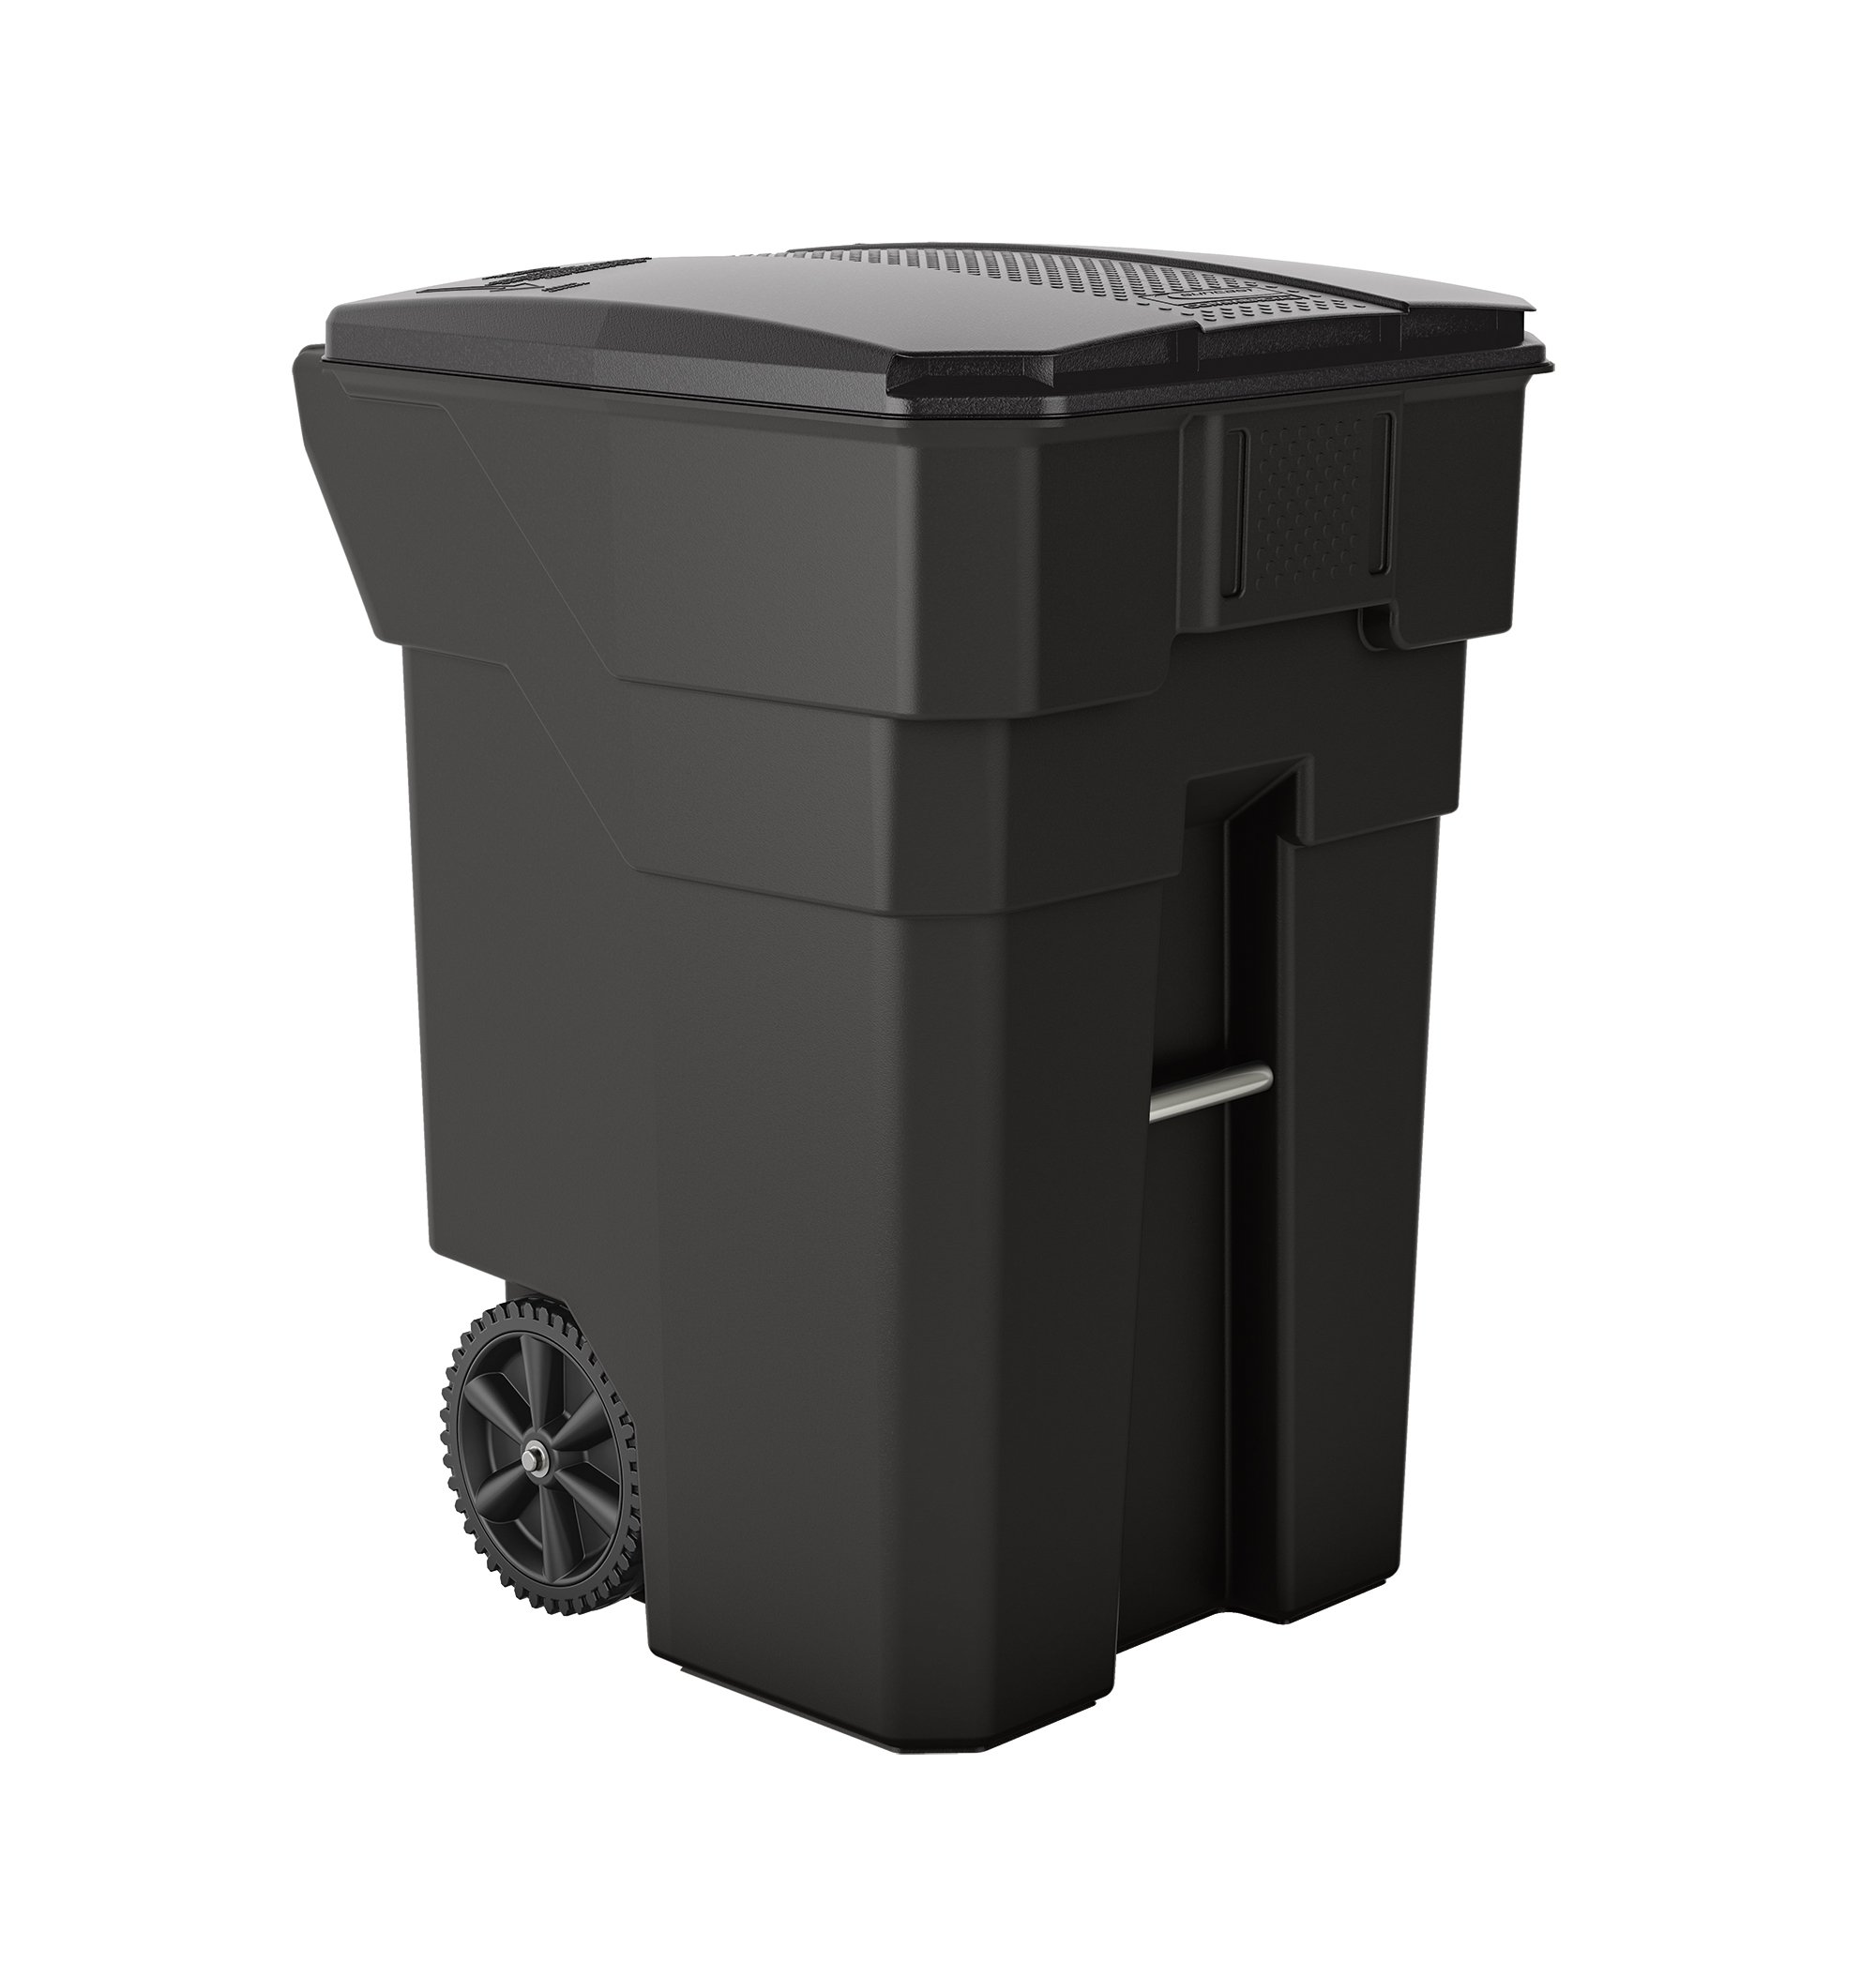 Suncast Commercial BMTCW96 Wheeled Trash Can, 43.75'' Height, 31'' Width, 96 gal Capacity, Plastic, Gray